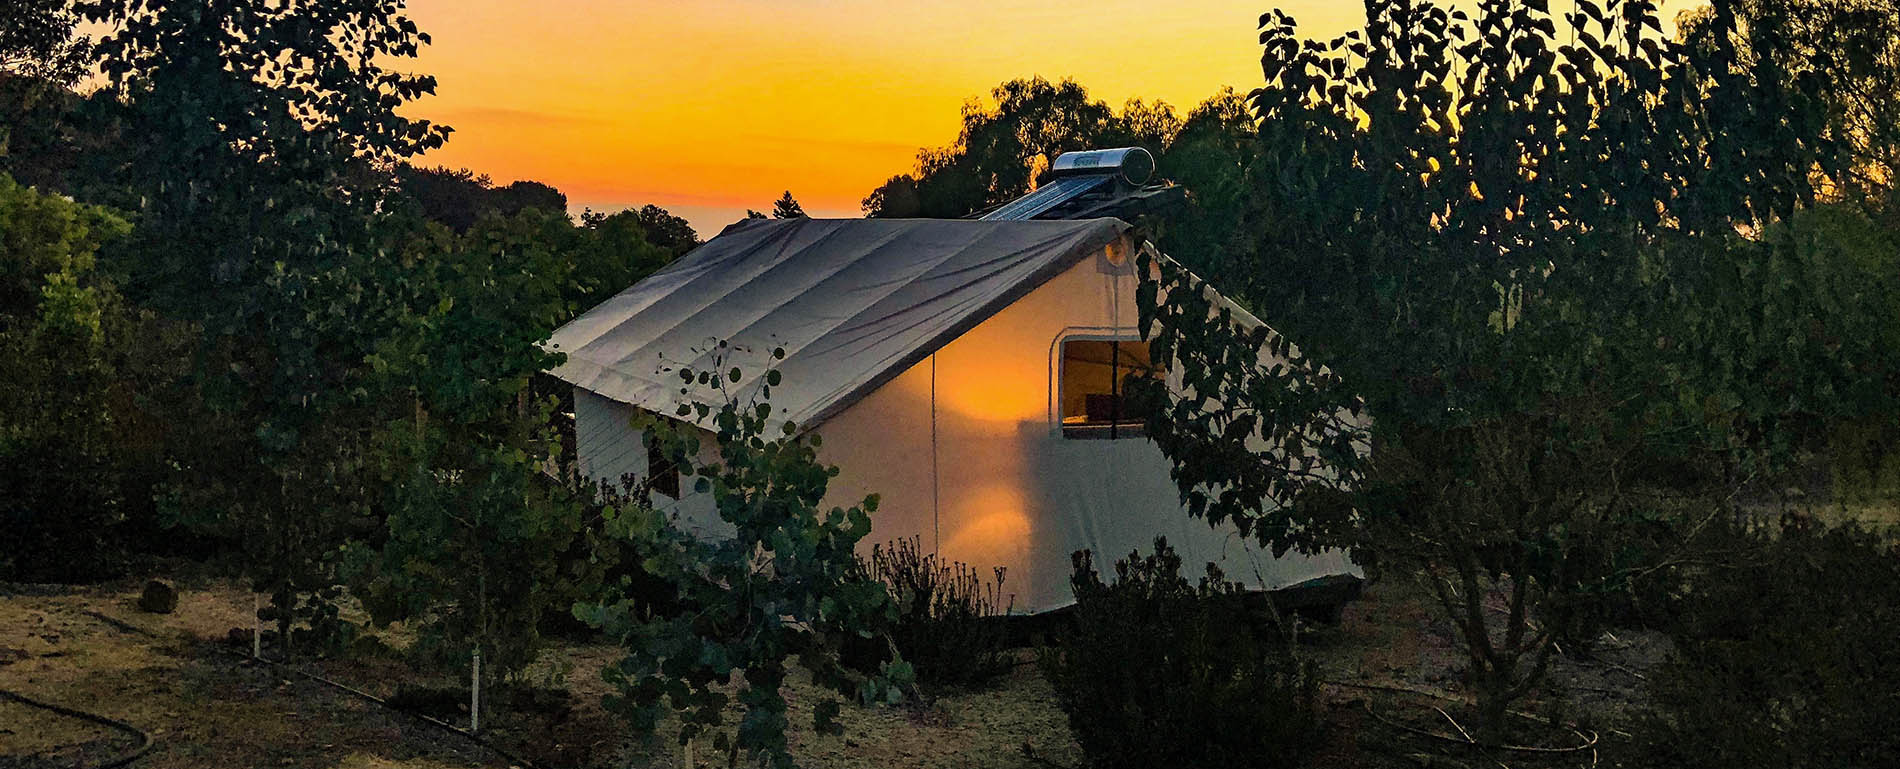 Safari Sunset Eco Glamping